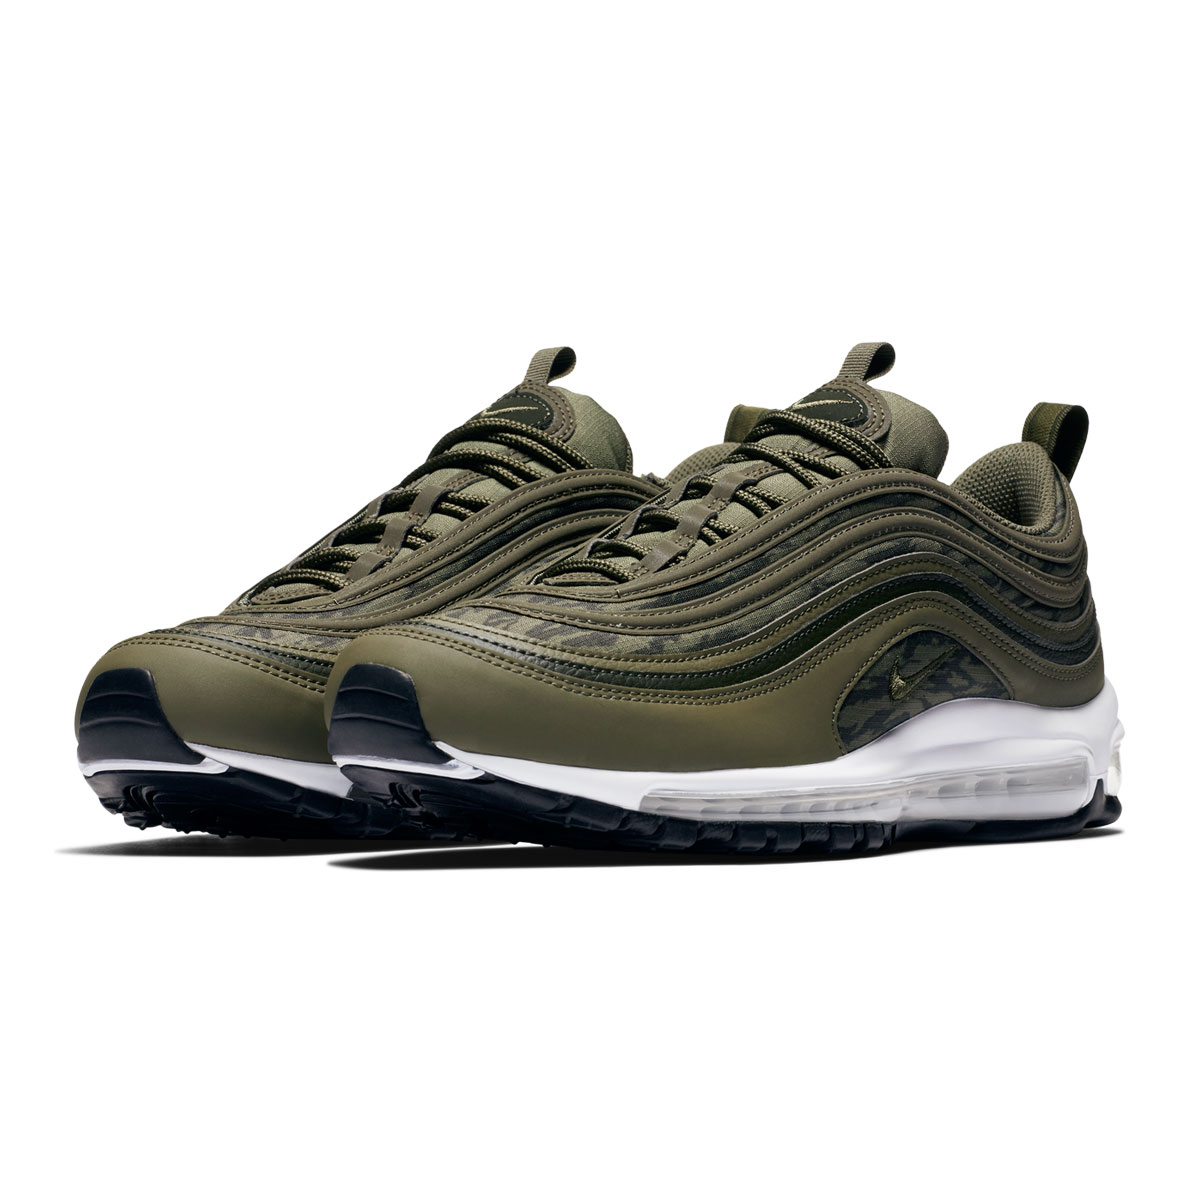 新素材新作 NIKE AIR MAX 97 97 MAX AOP(ナイキ エア マックス 97 97 AOP)(MEDIUM OLIVE/MEDIUM OLIVE-SEQUOIA-BLACK)18SU-I, 防犯カメラの通販NET-SHOP:490376d4 --- canoncity.azurewebsites.net